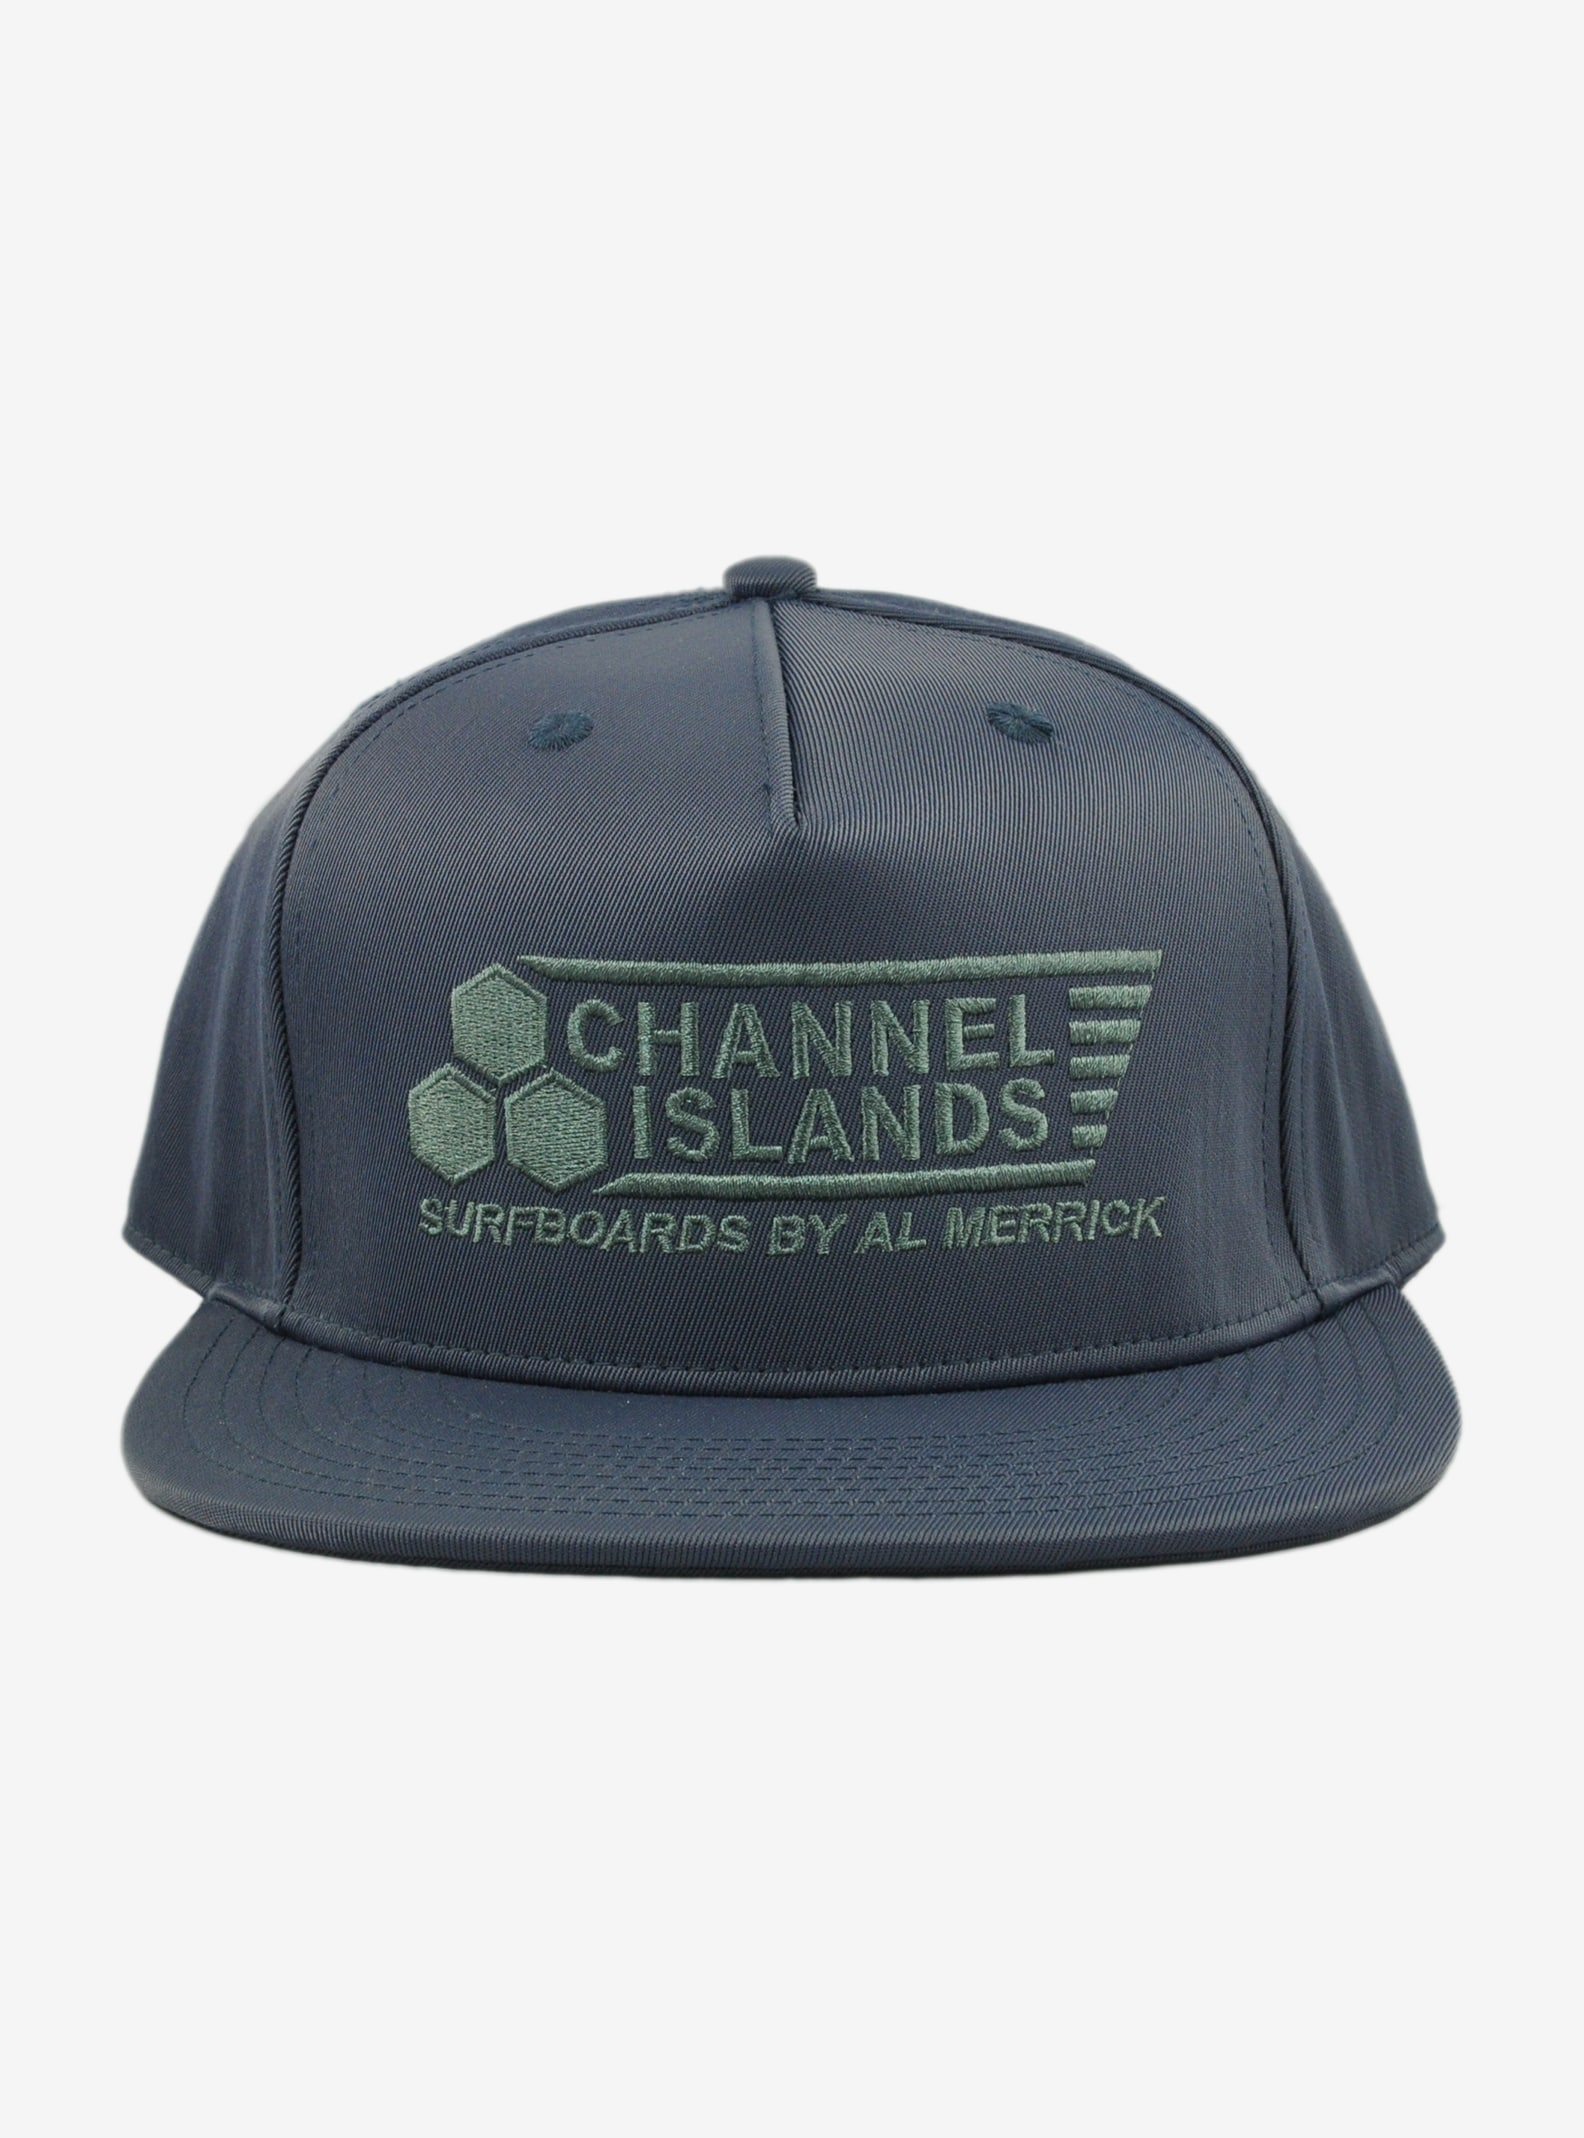 Channel Islands Flag Snapback Hat shown in Indigo